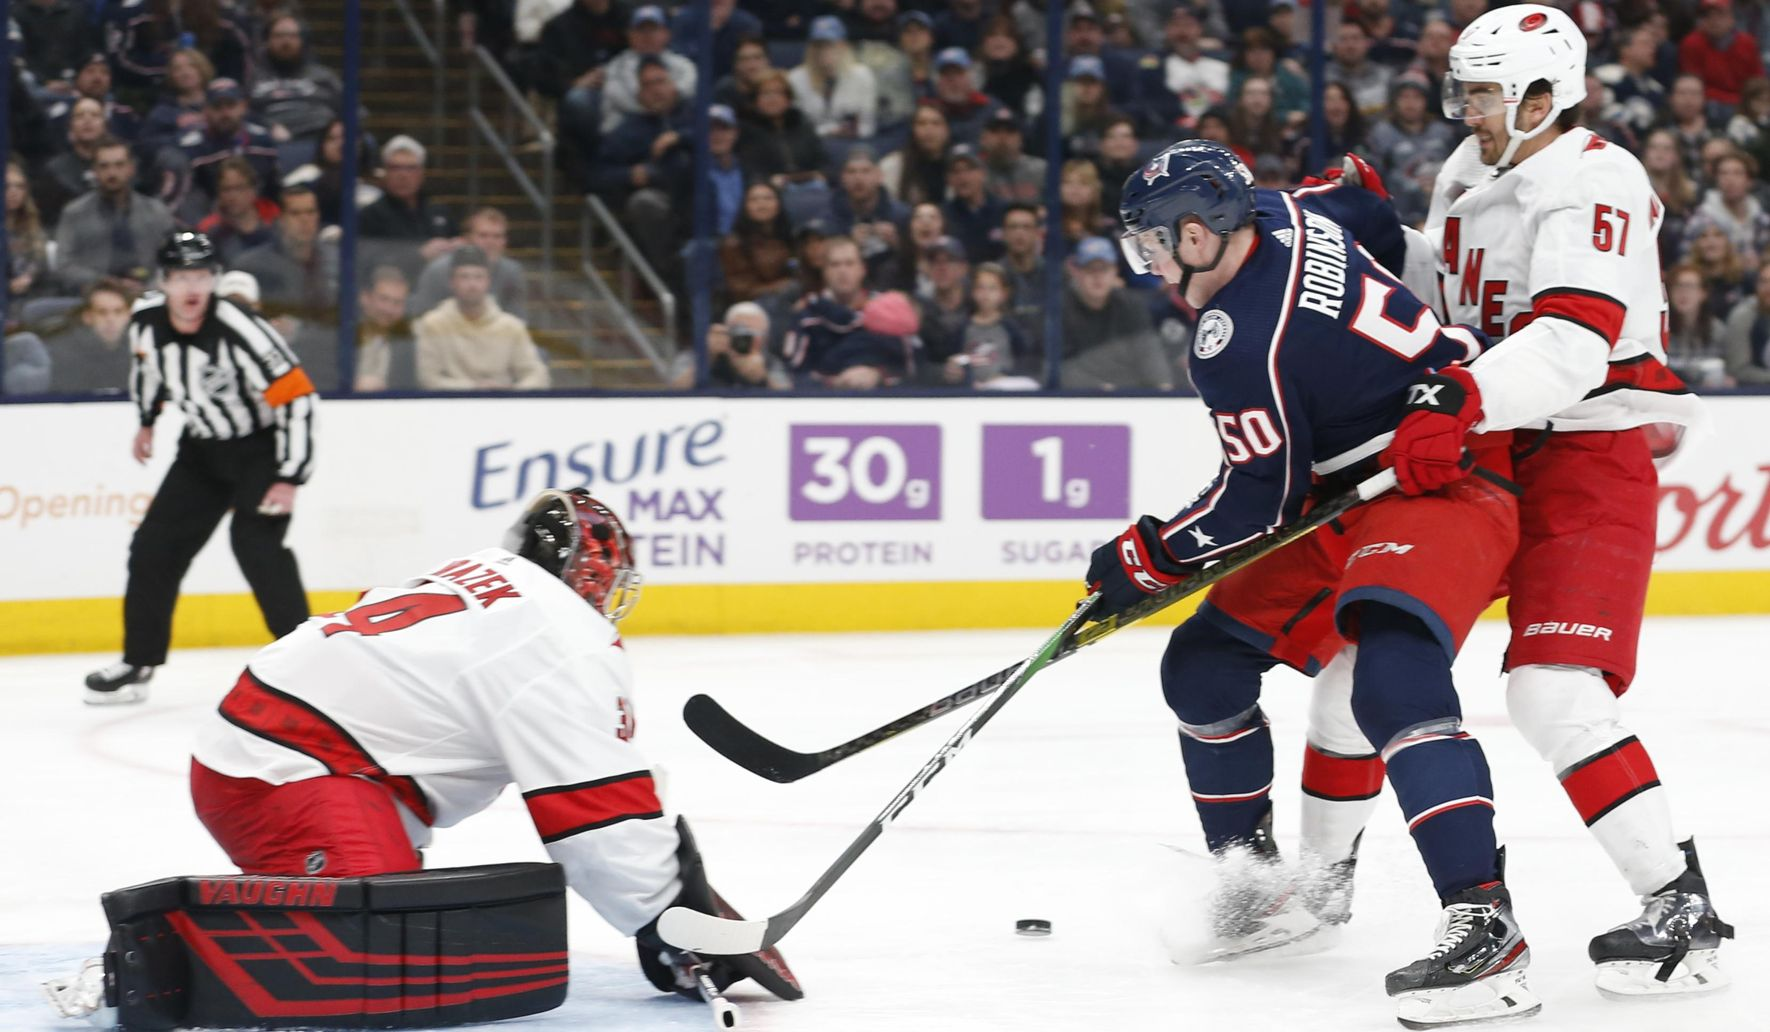 Hurricanes_blue_jackets_hockey_68314_c0-51-3325-1989_s1770x1032